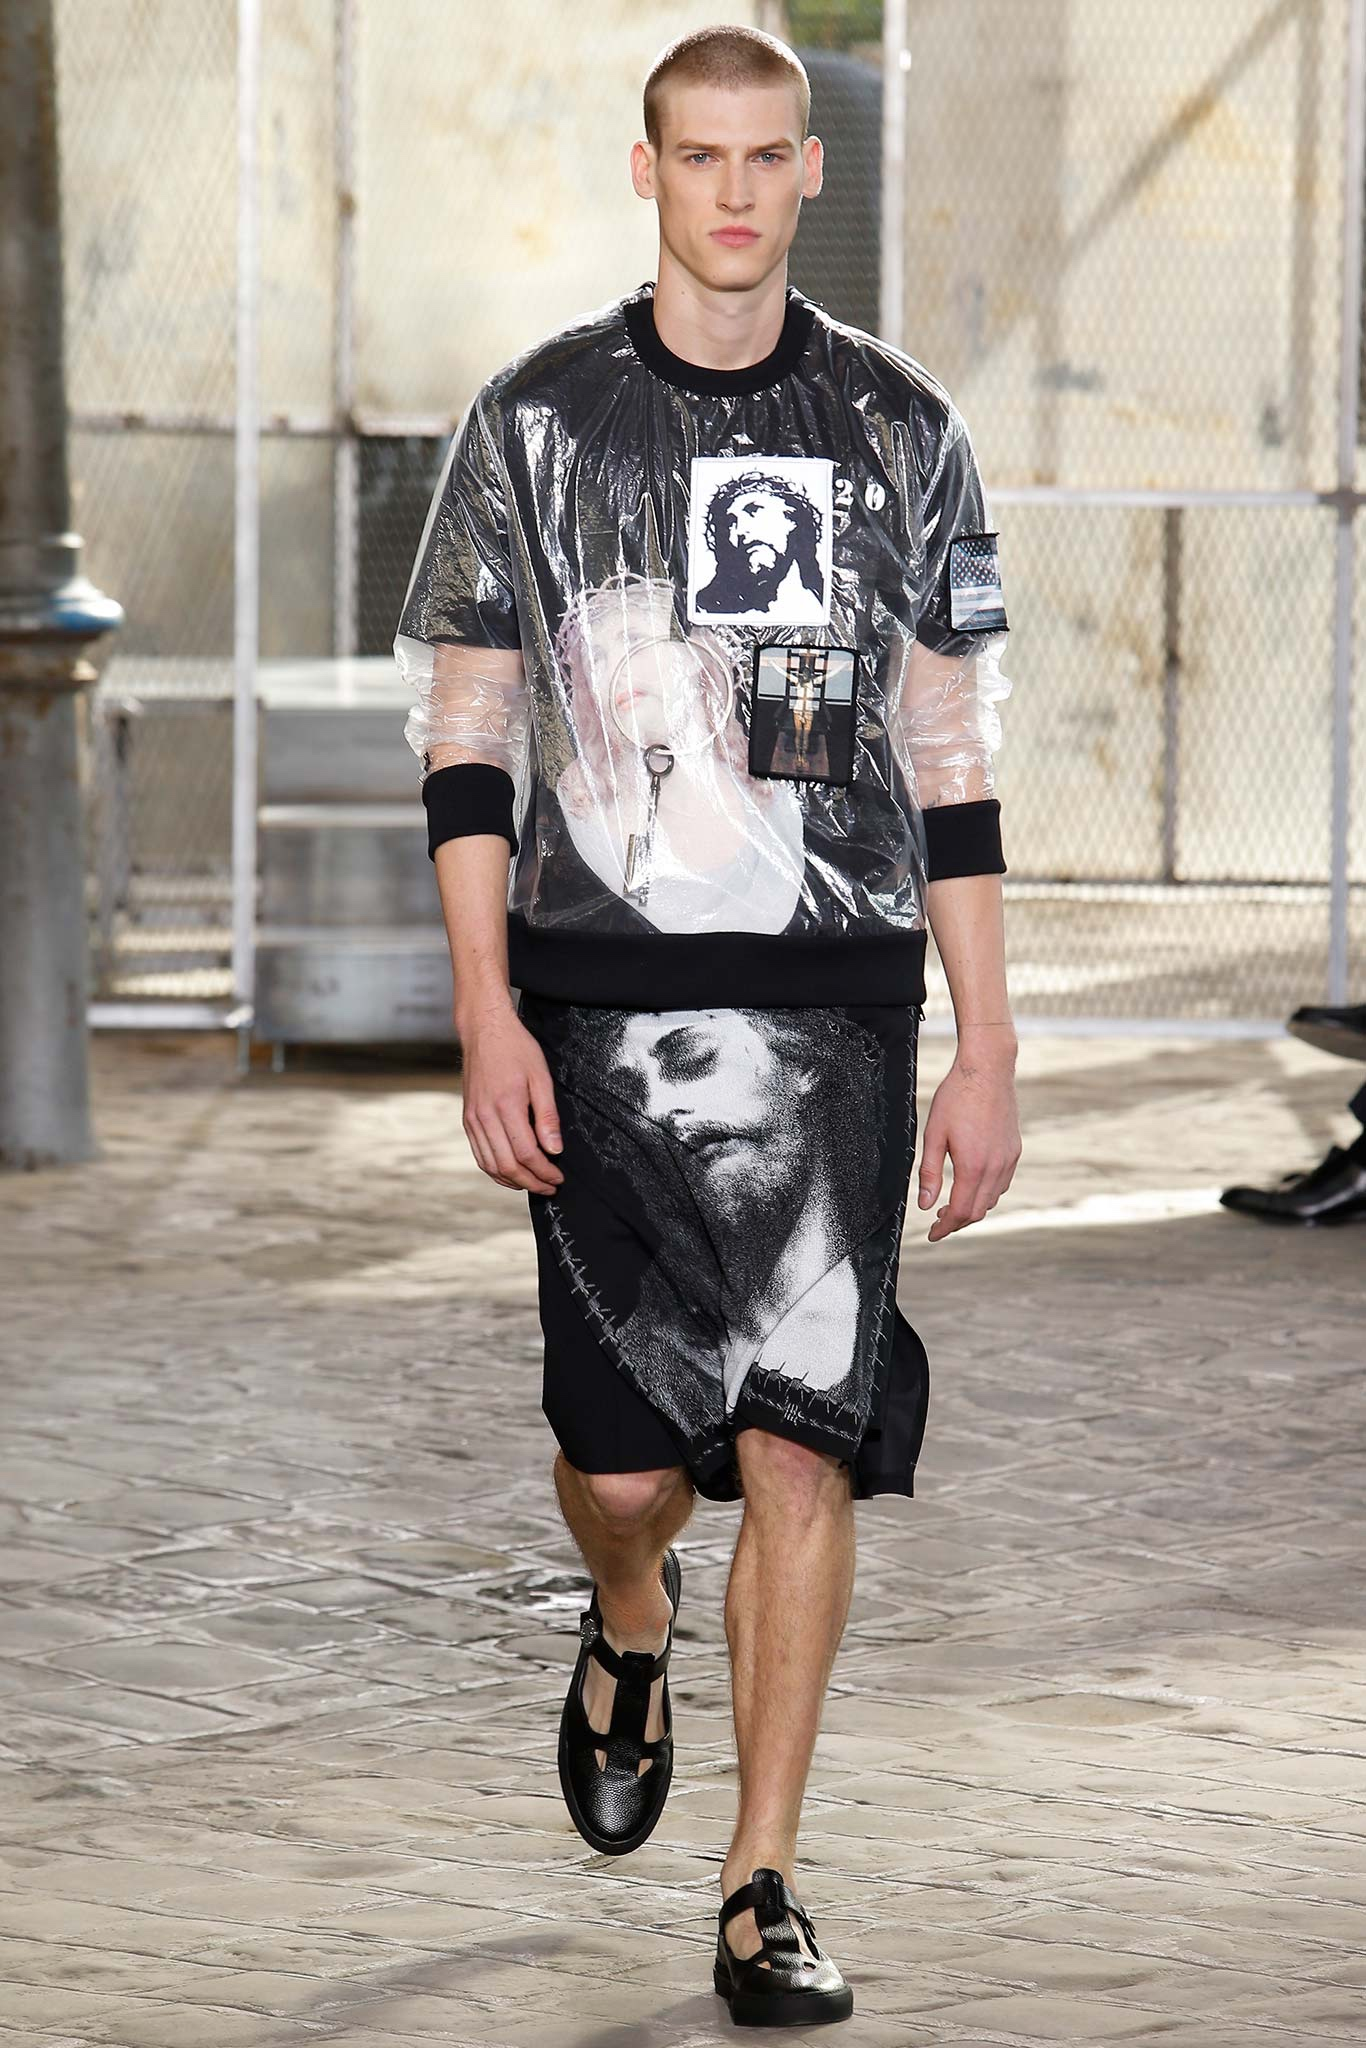 givenchy springsummer 2016 menswear collection paris